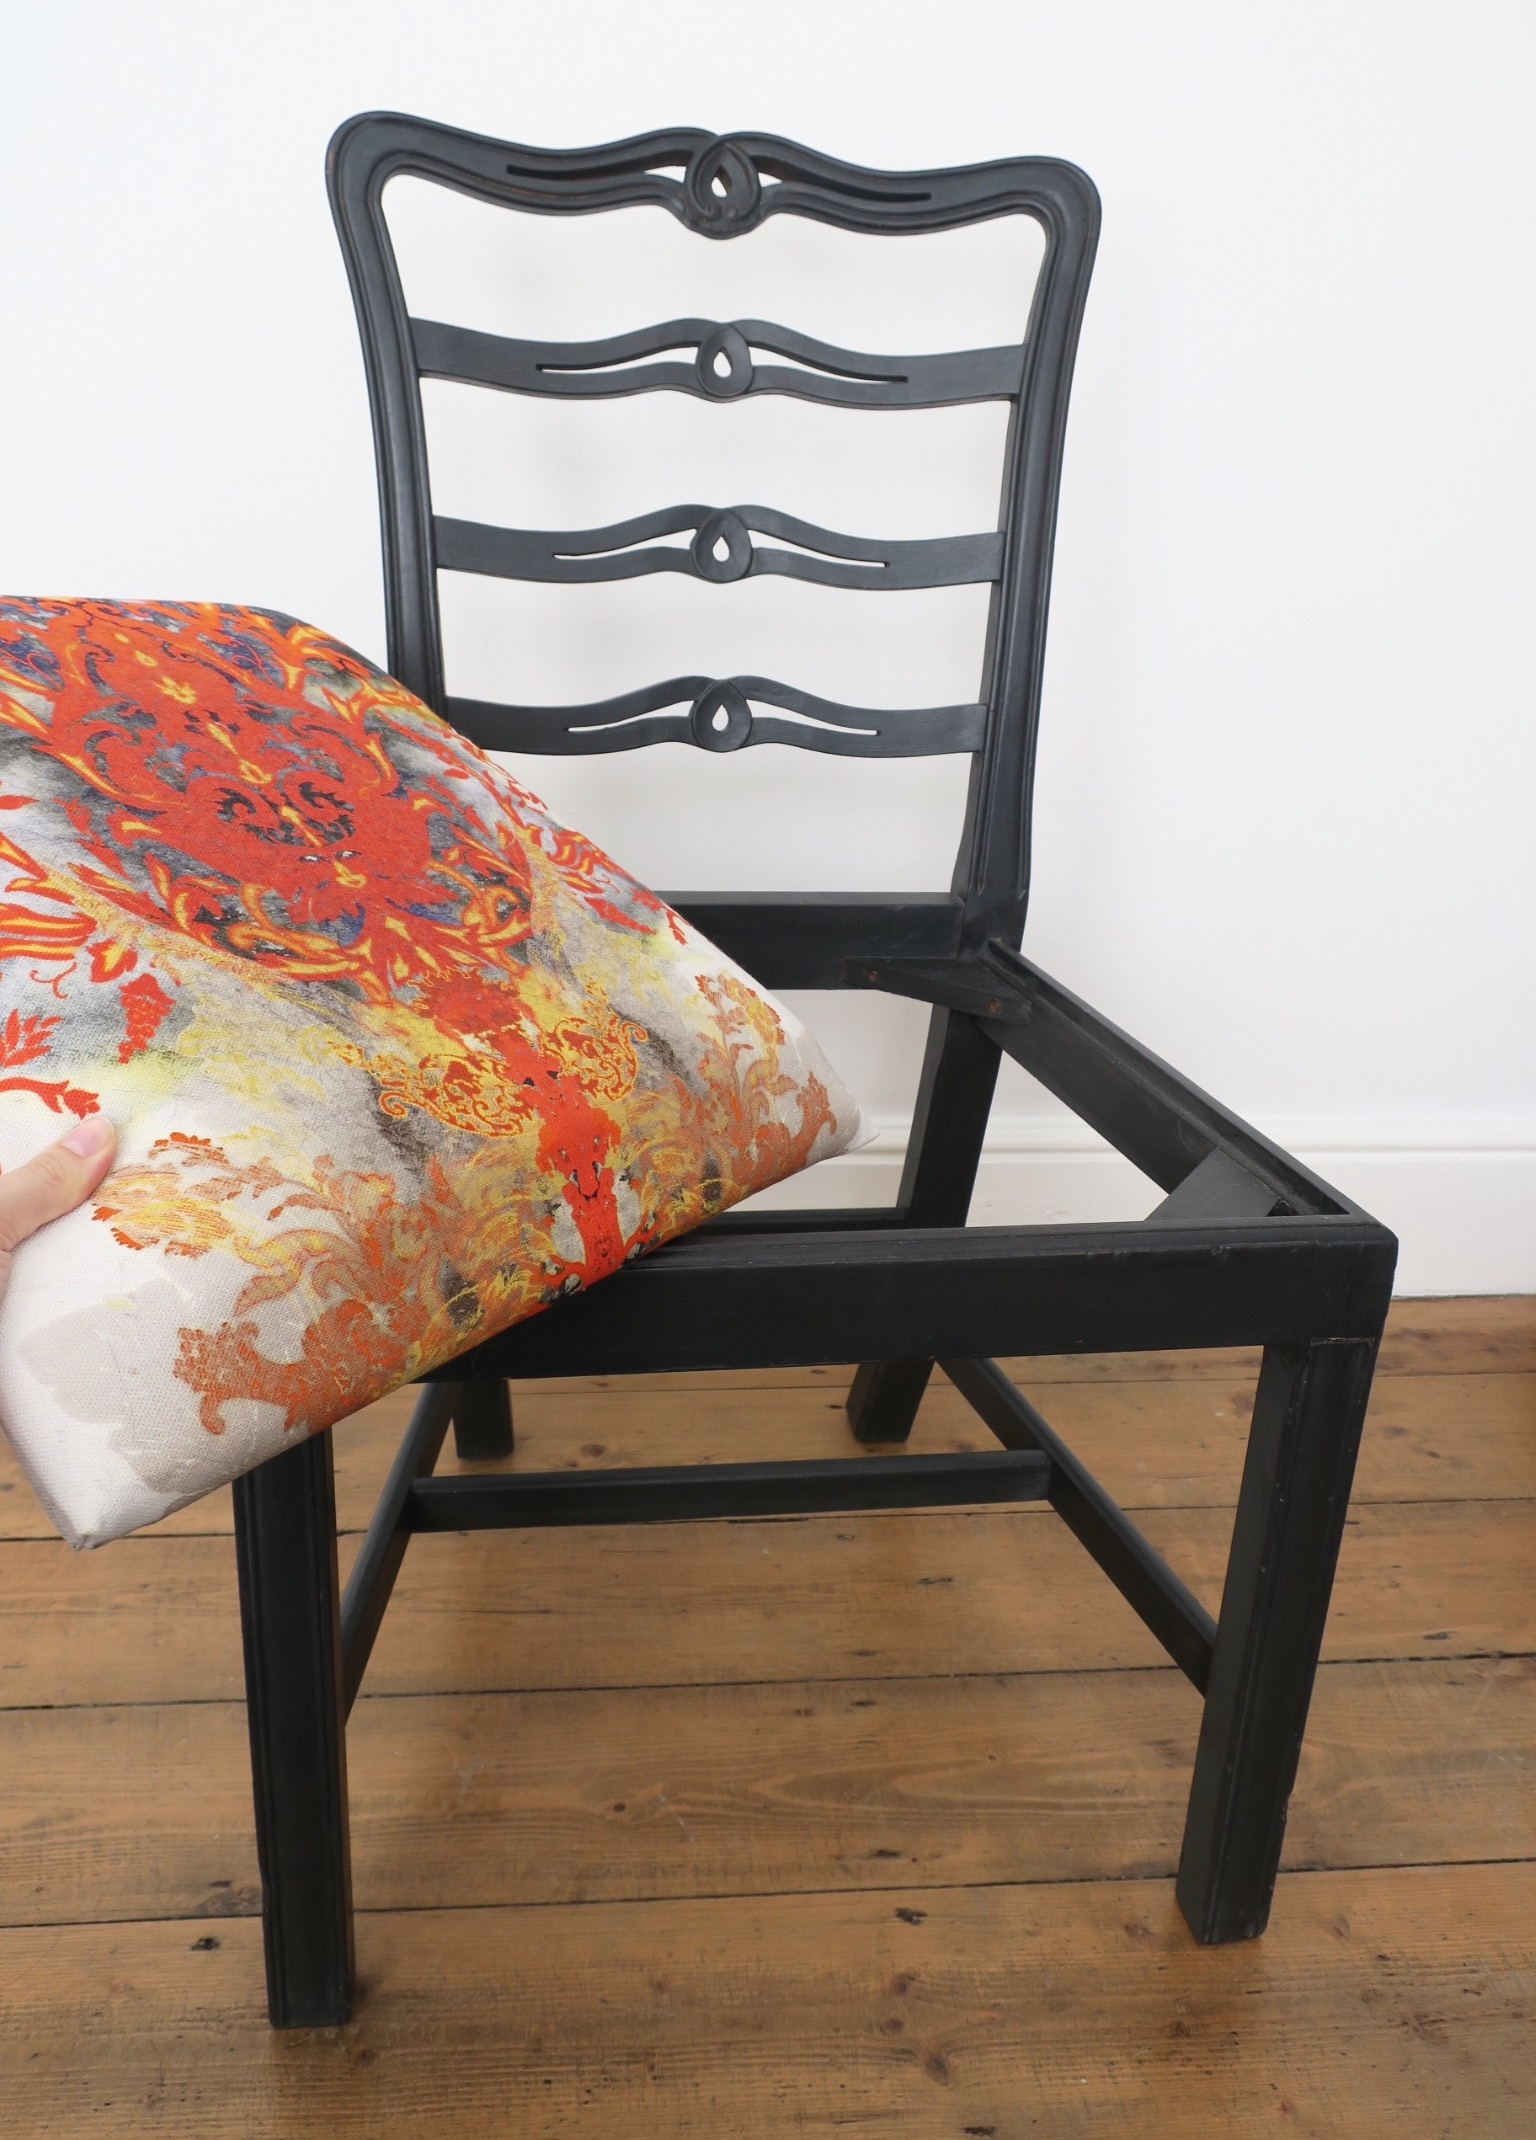 UP-CYCLED CHAIR MAKEOVER - The Grown Up Edit